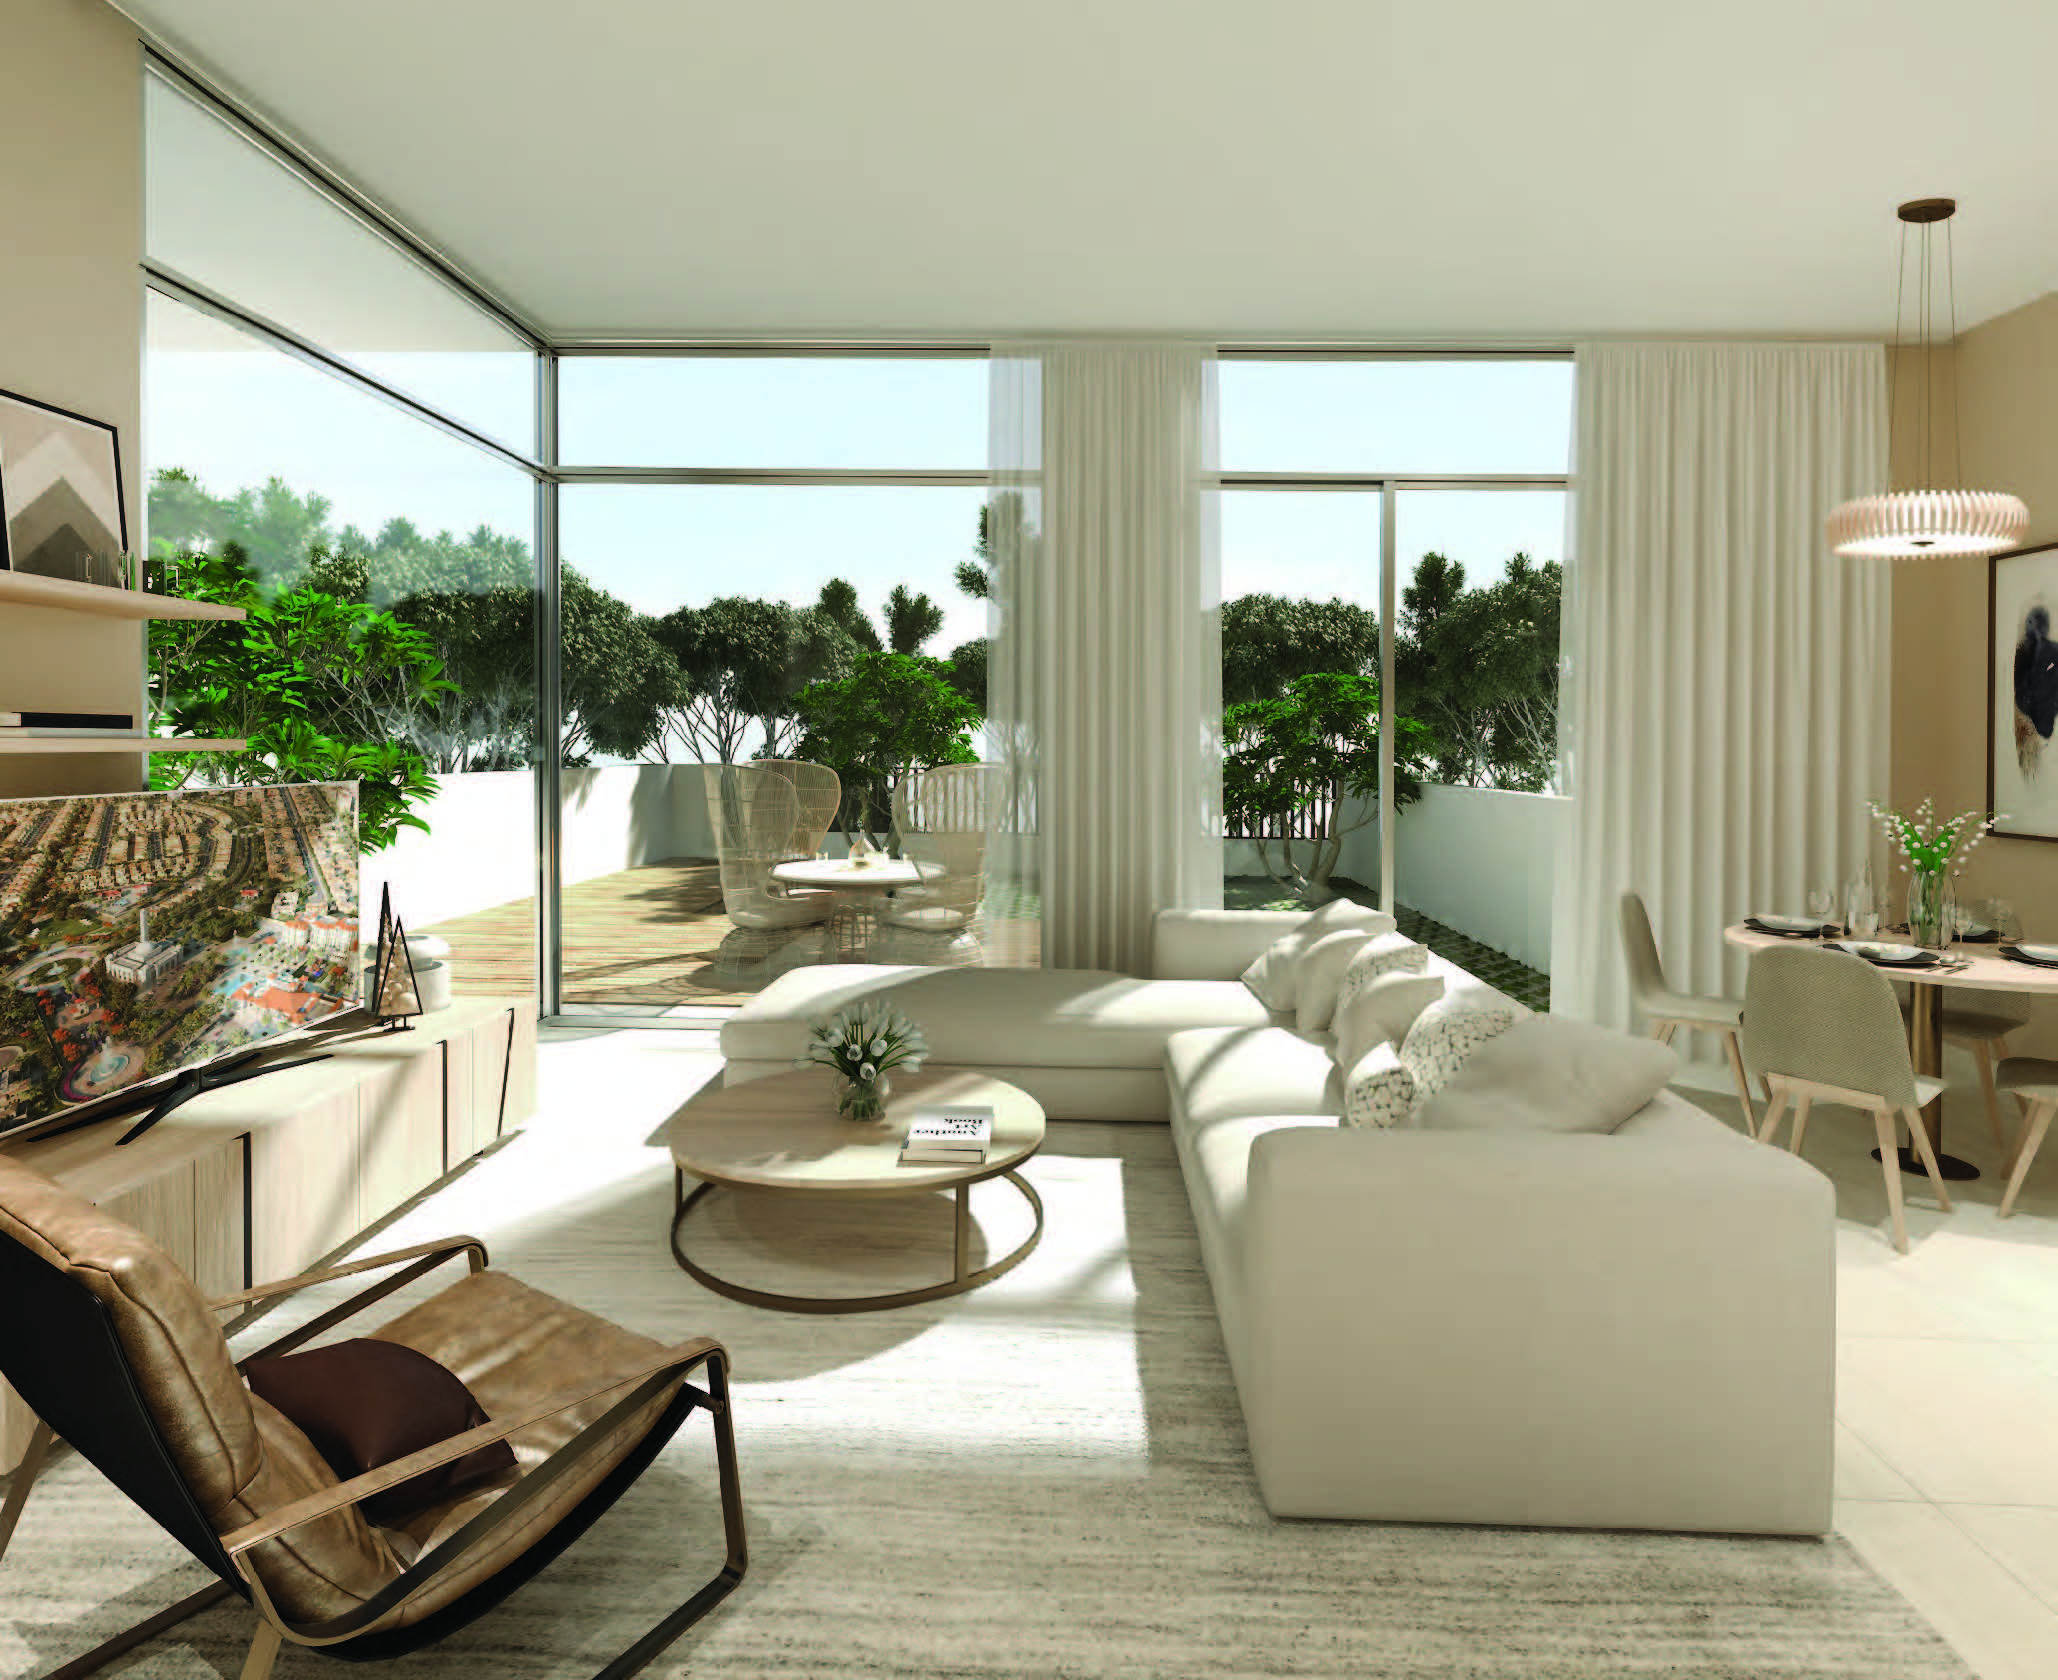 Mudon Views by Dubai Properties in Mudon. Luxury apartments for sale in Dubai